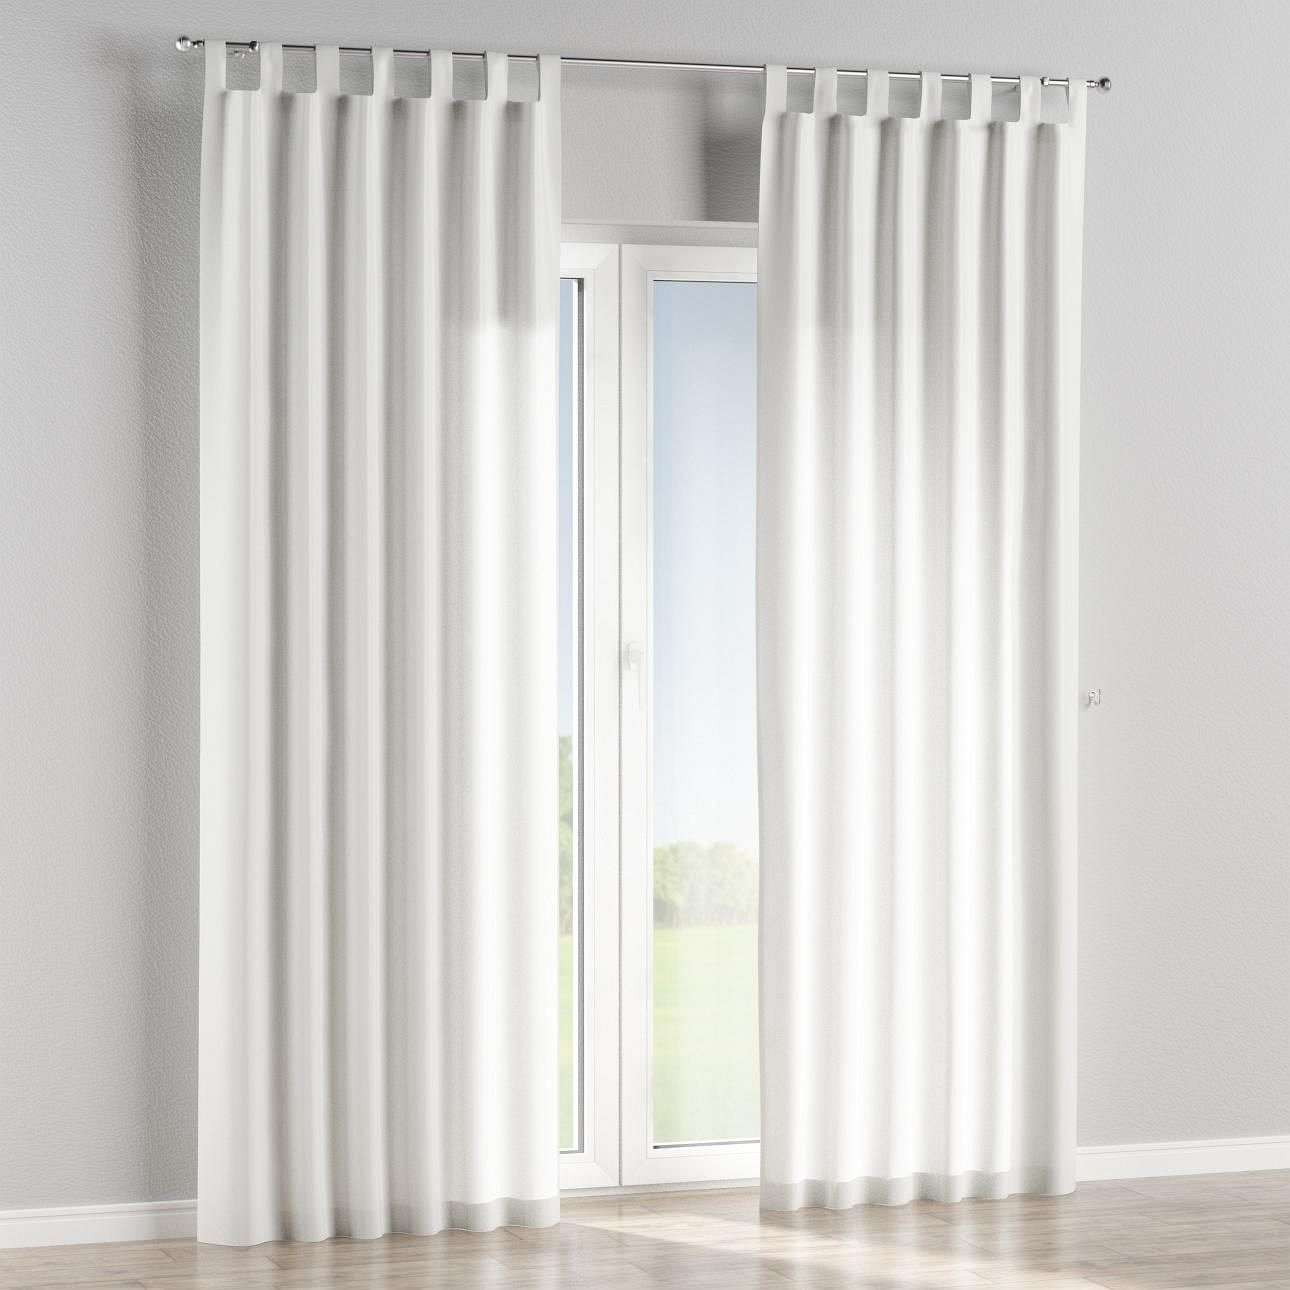 Tab top lined curtains in collection Jupiter, fabric: 127-42